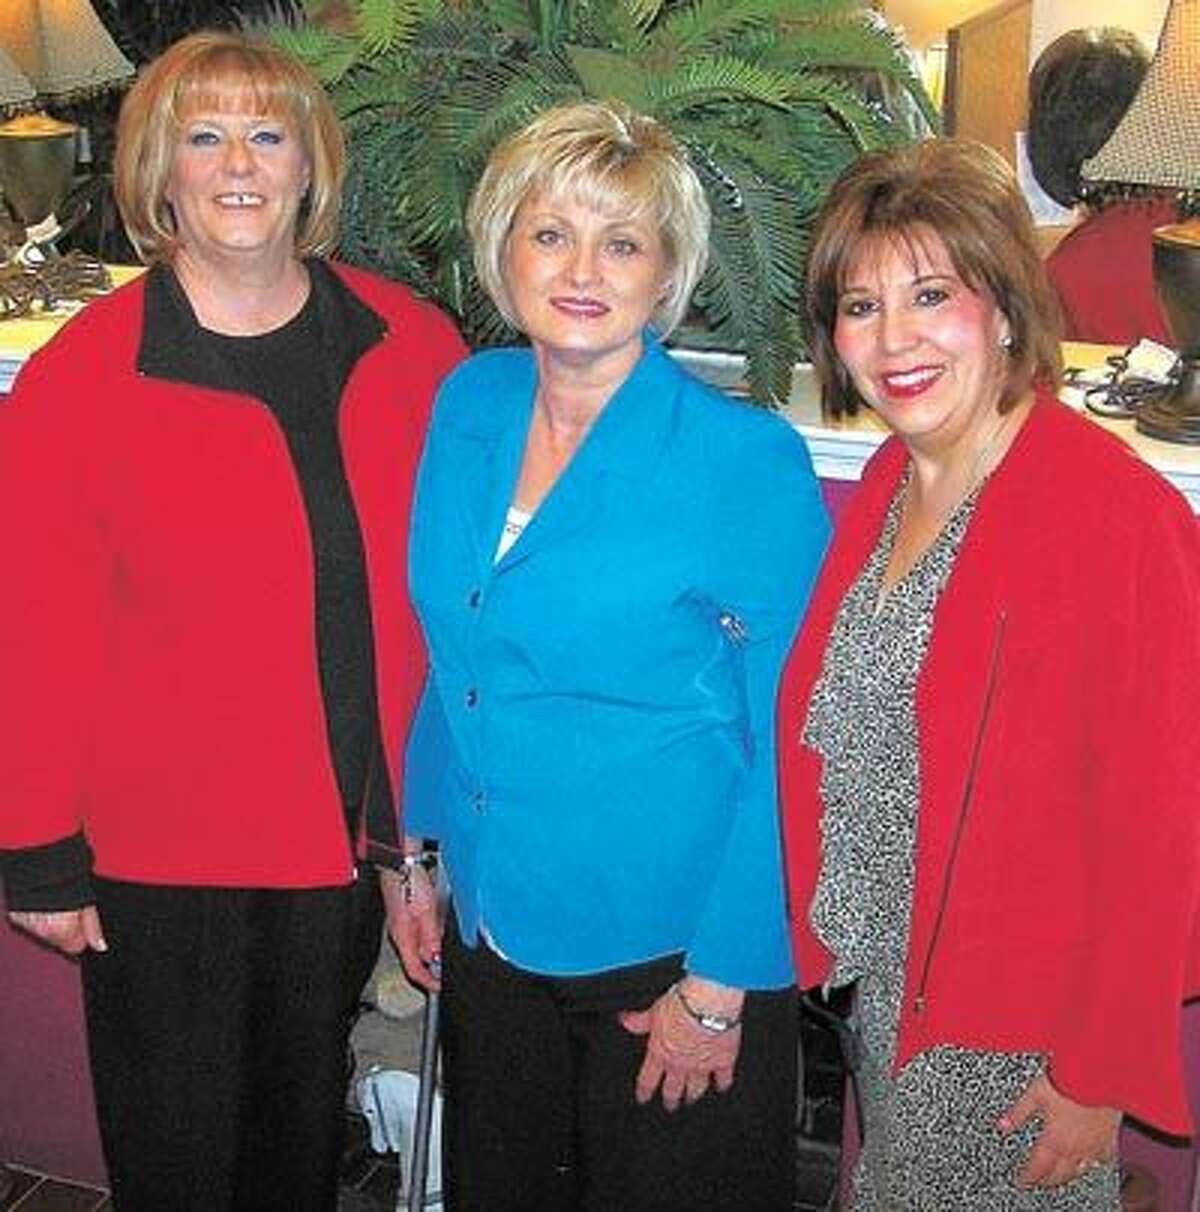 Debbie, Fran and Patricia invite you to call and see how Staffing Resources can help you meet the challenges of cutting staffing costs while still getting the work done. Call 684-0527.